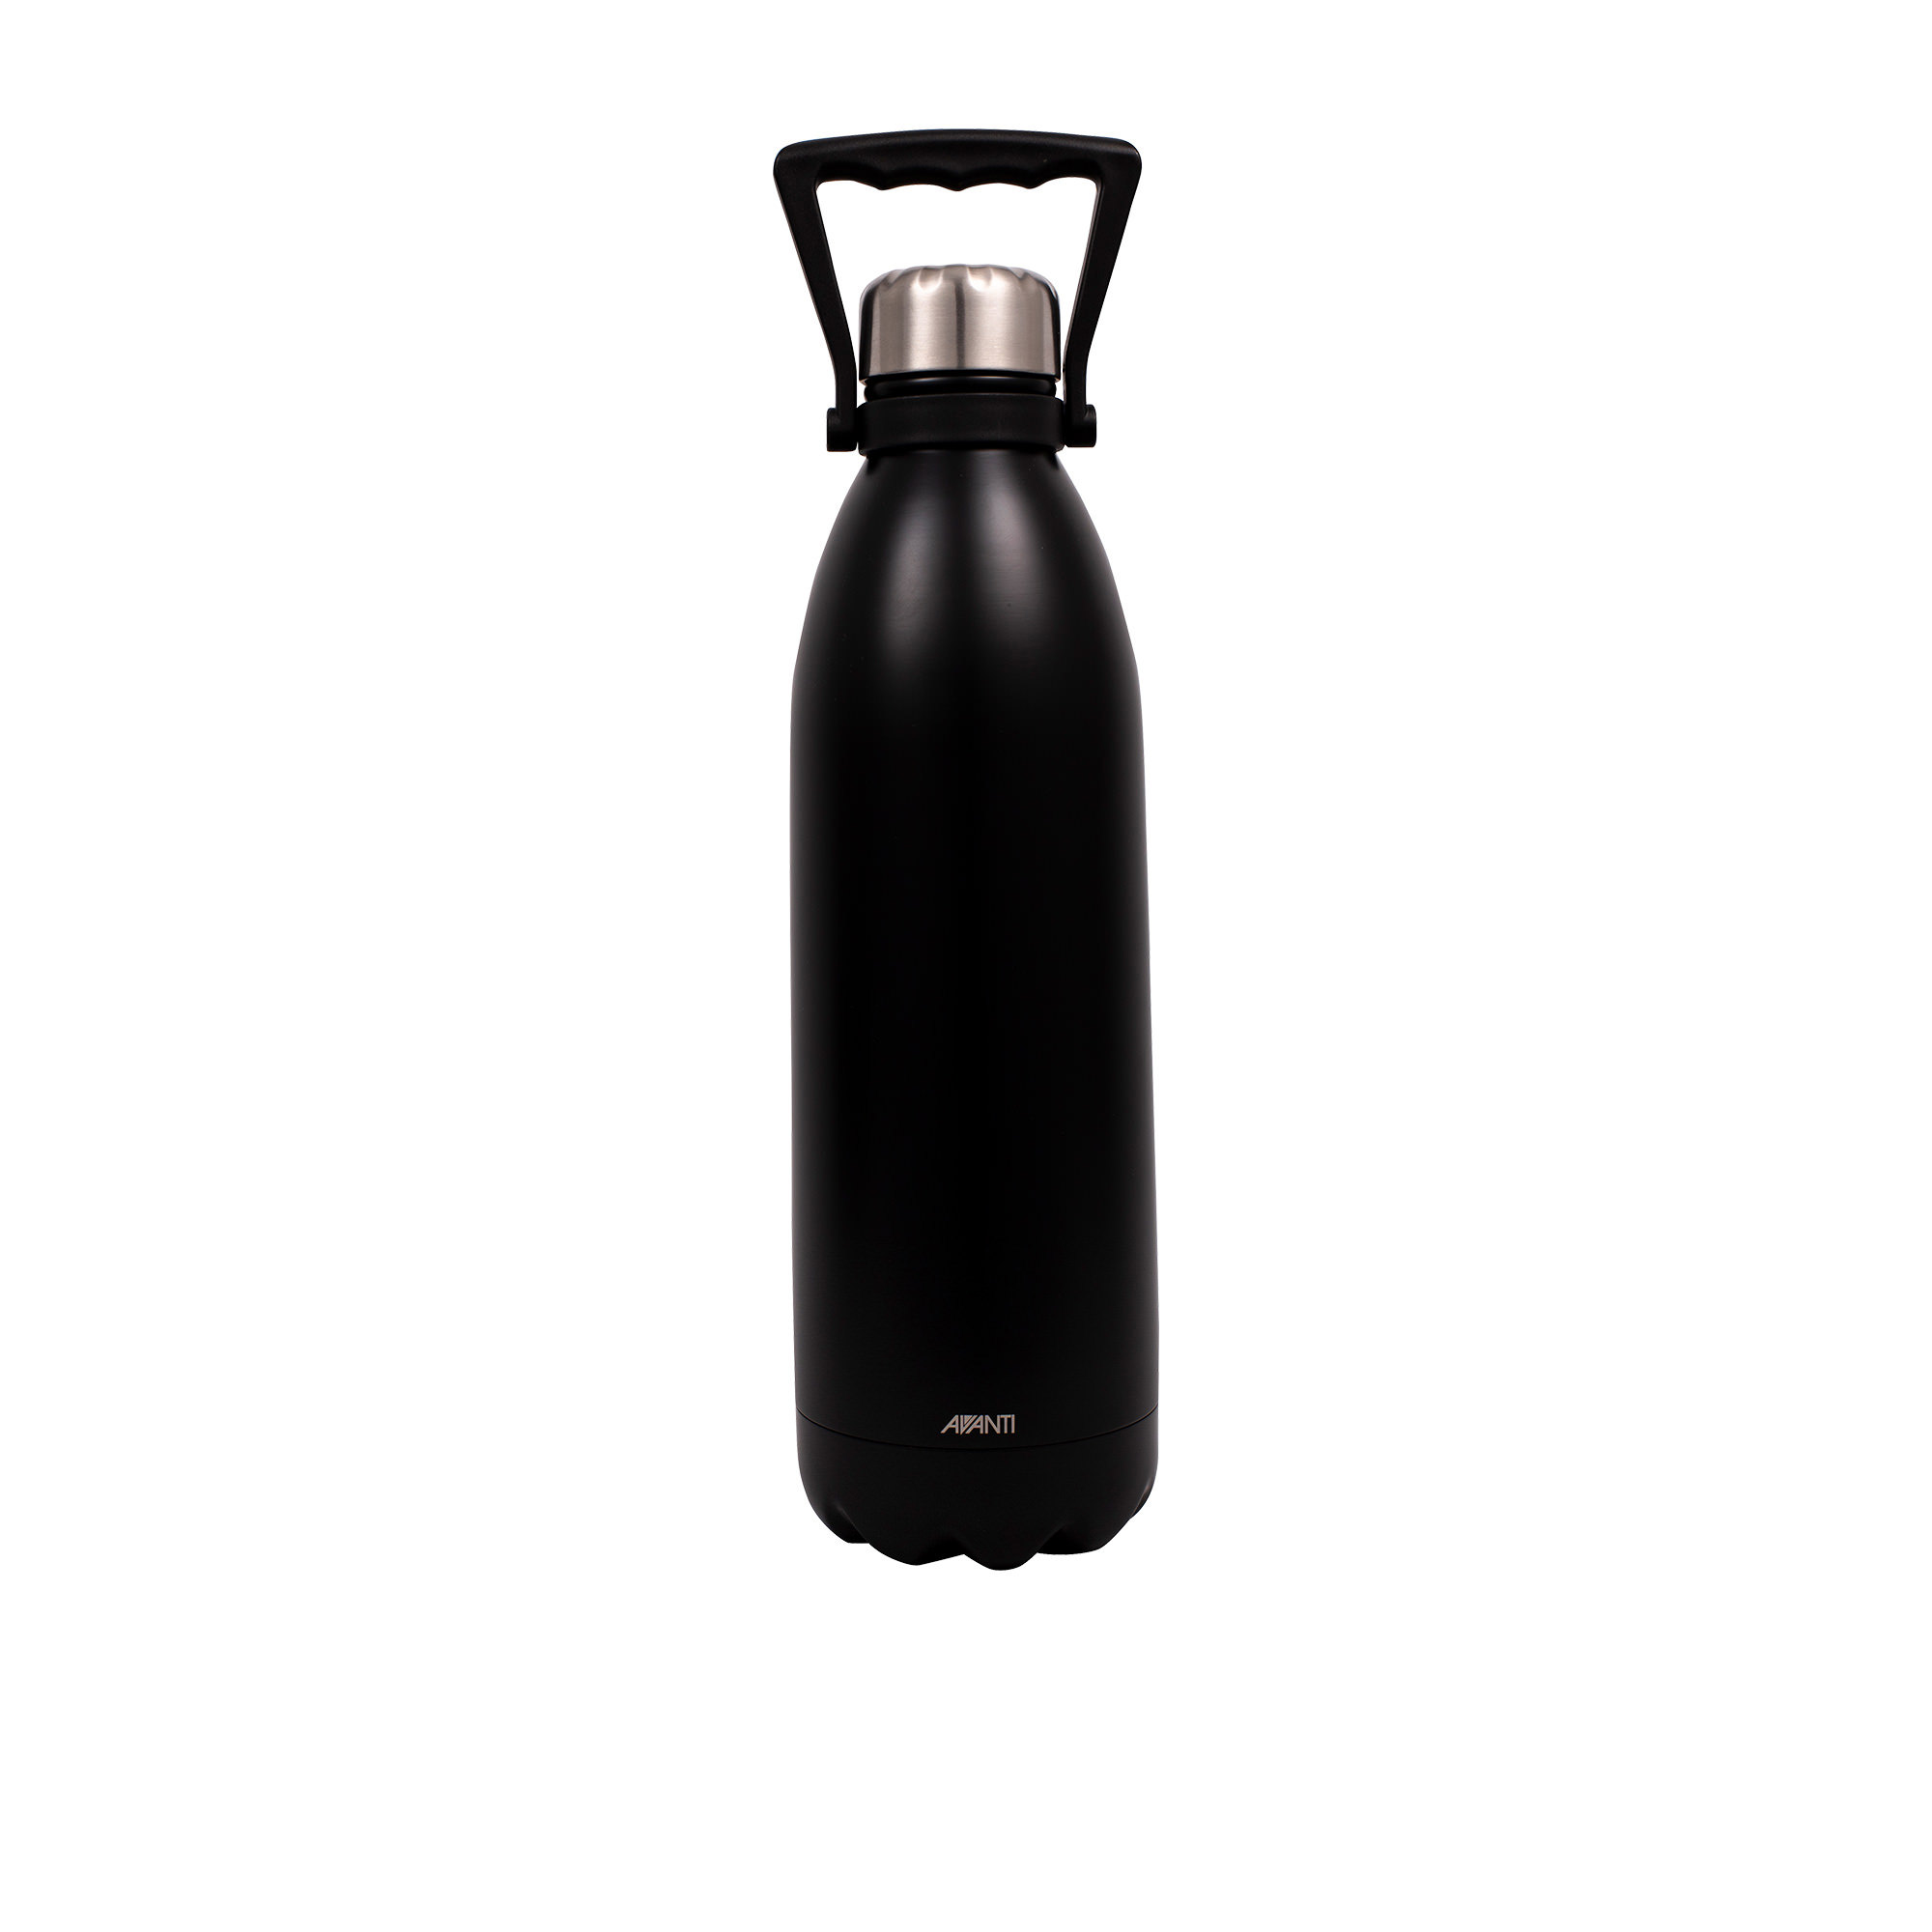 Avanti Insulated Drink Bottle 1.5L Matte Black